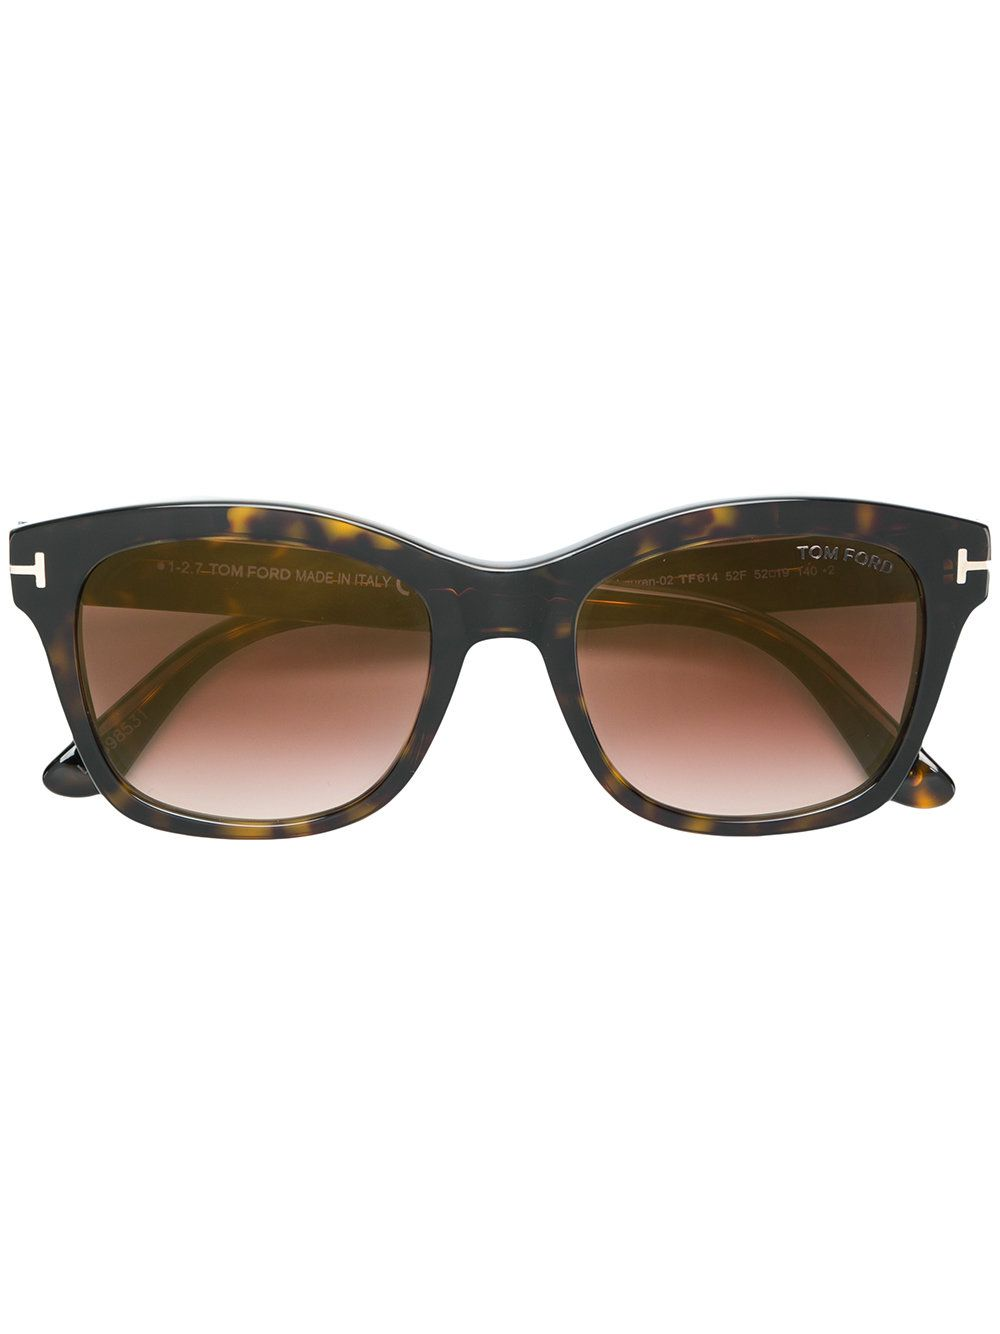 9ae829b71f6 Tom Ford Eyewear Square Sunglasses - Brown